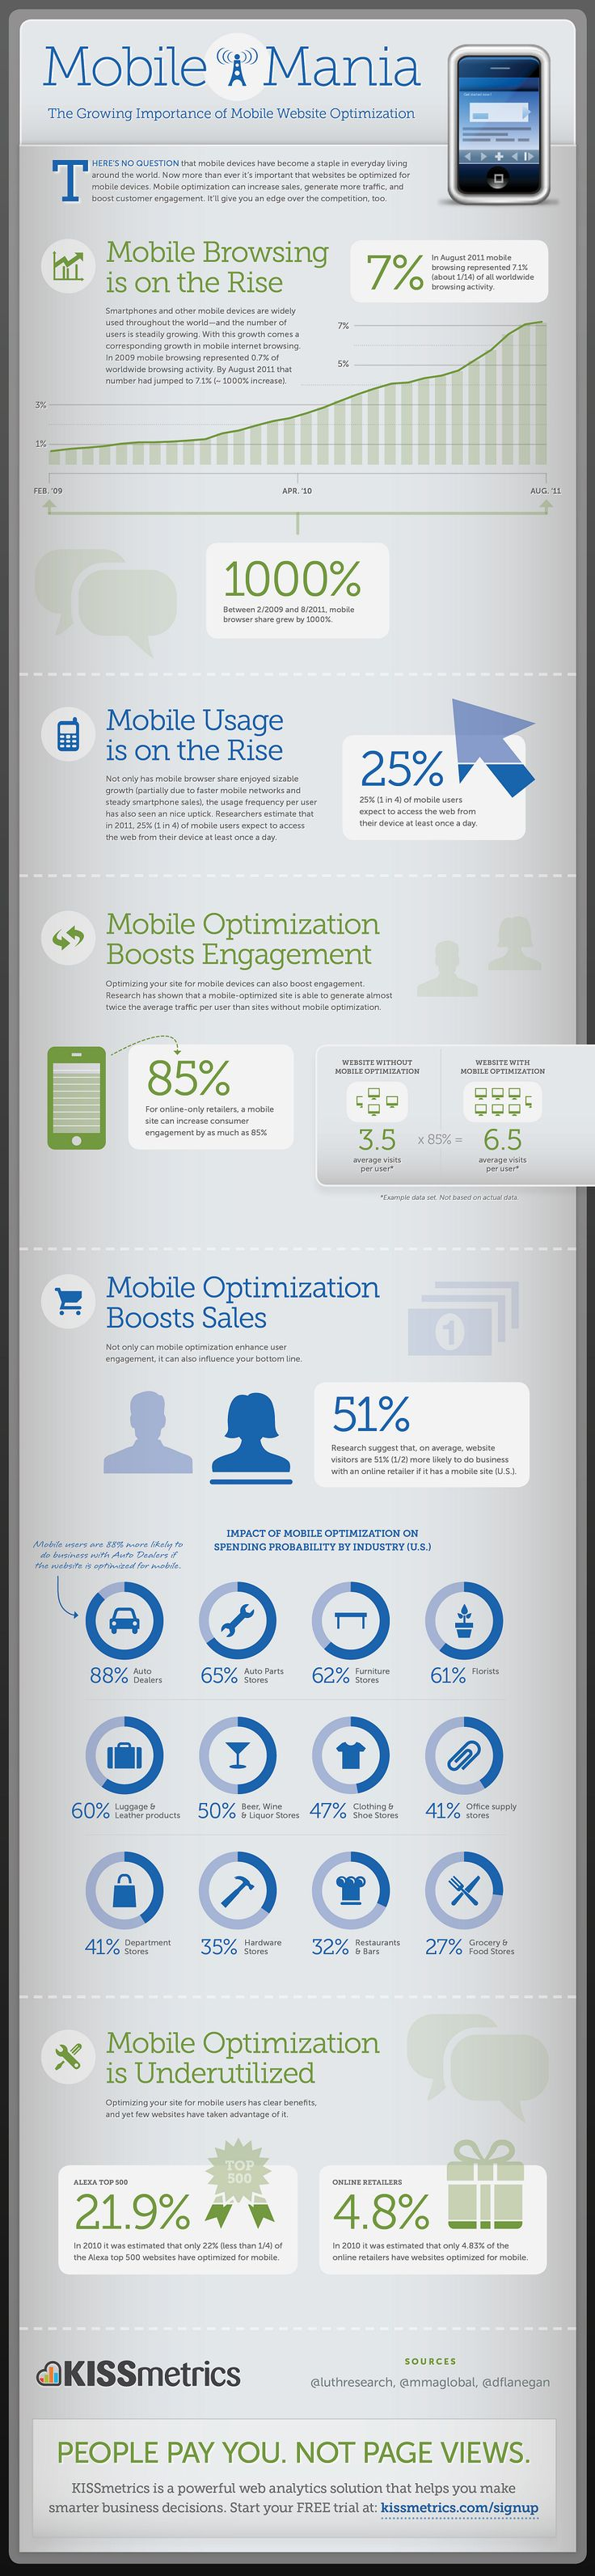 Mobile Mania: The Growing Importance of Mobile Website Optimisation - Mobile optimisation can increase sales, generate more traffic, and boost customer engagement.